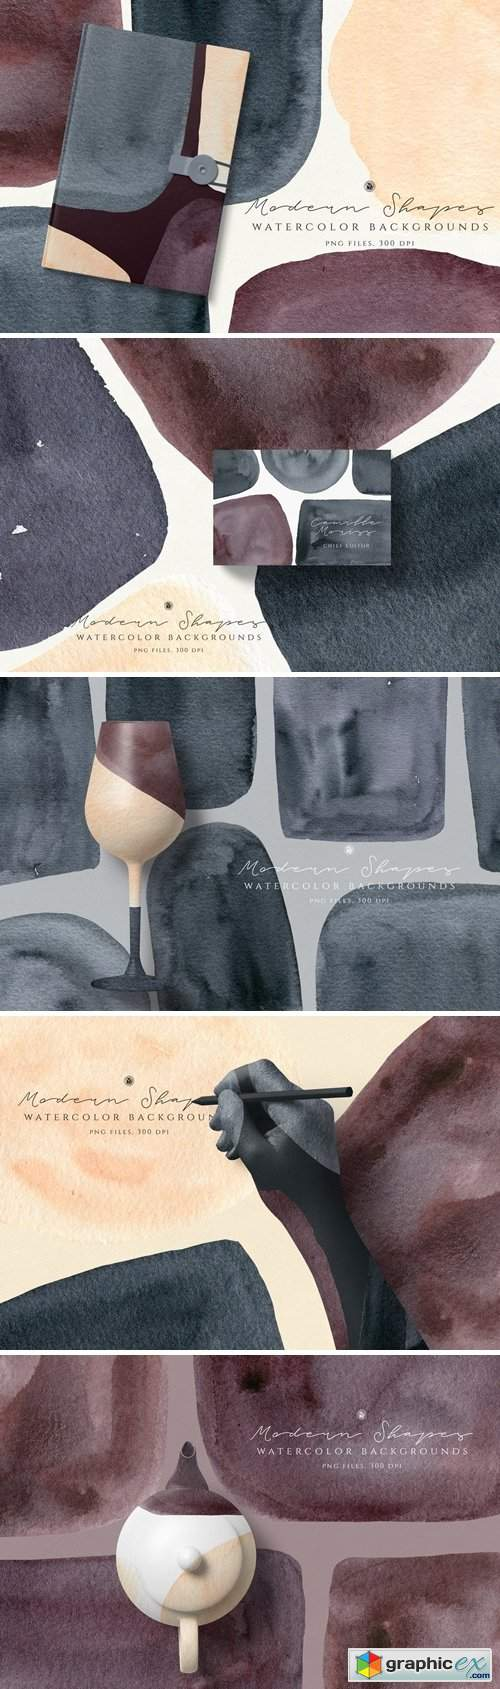 Watercolor Backgrounds Modern Shapes